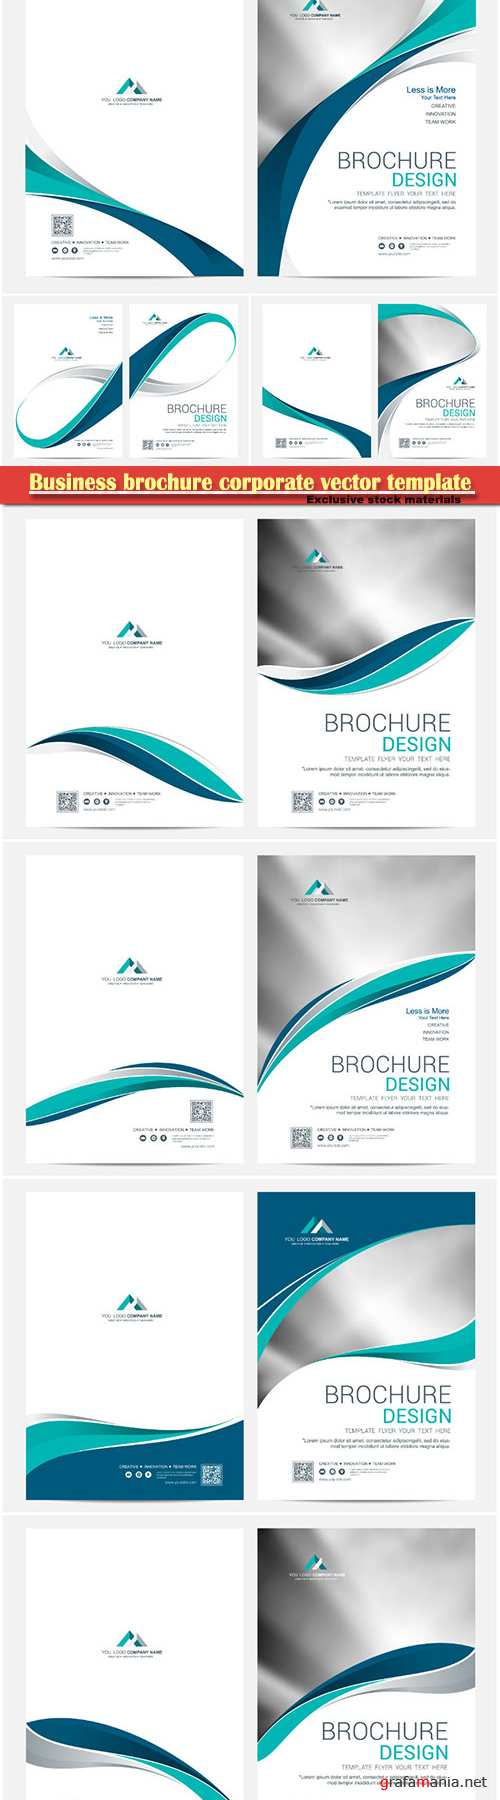 Business brochure corporate vector template, magazine flyer mockup # 35